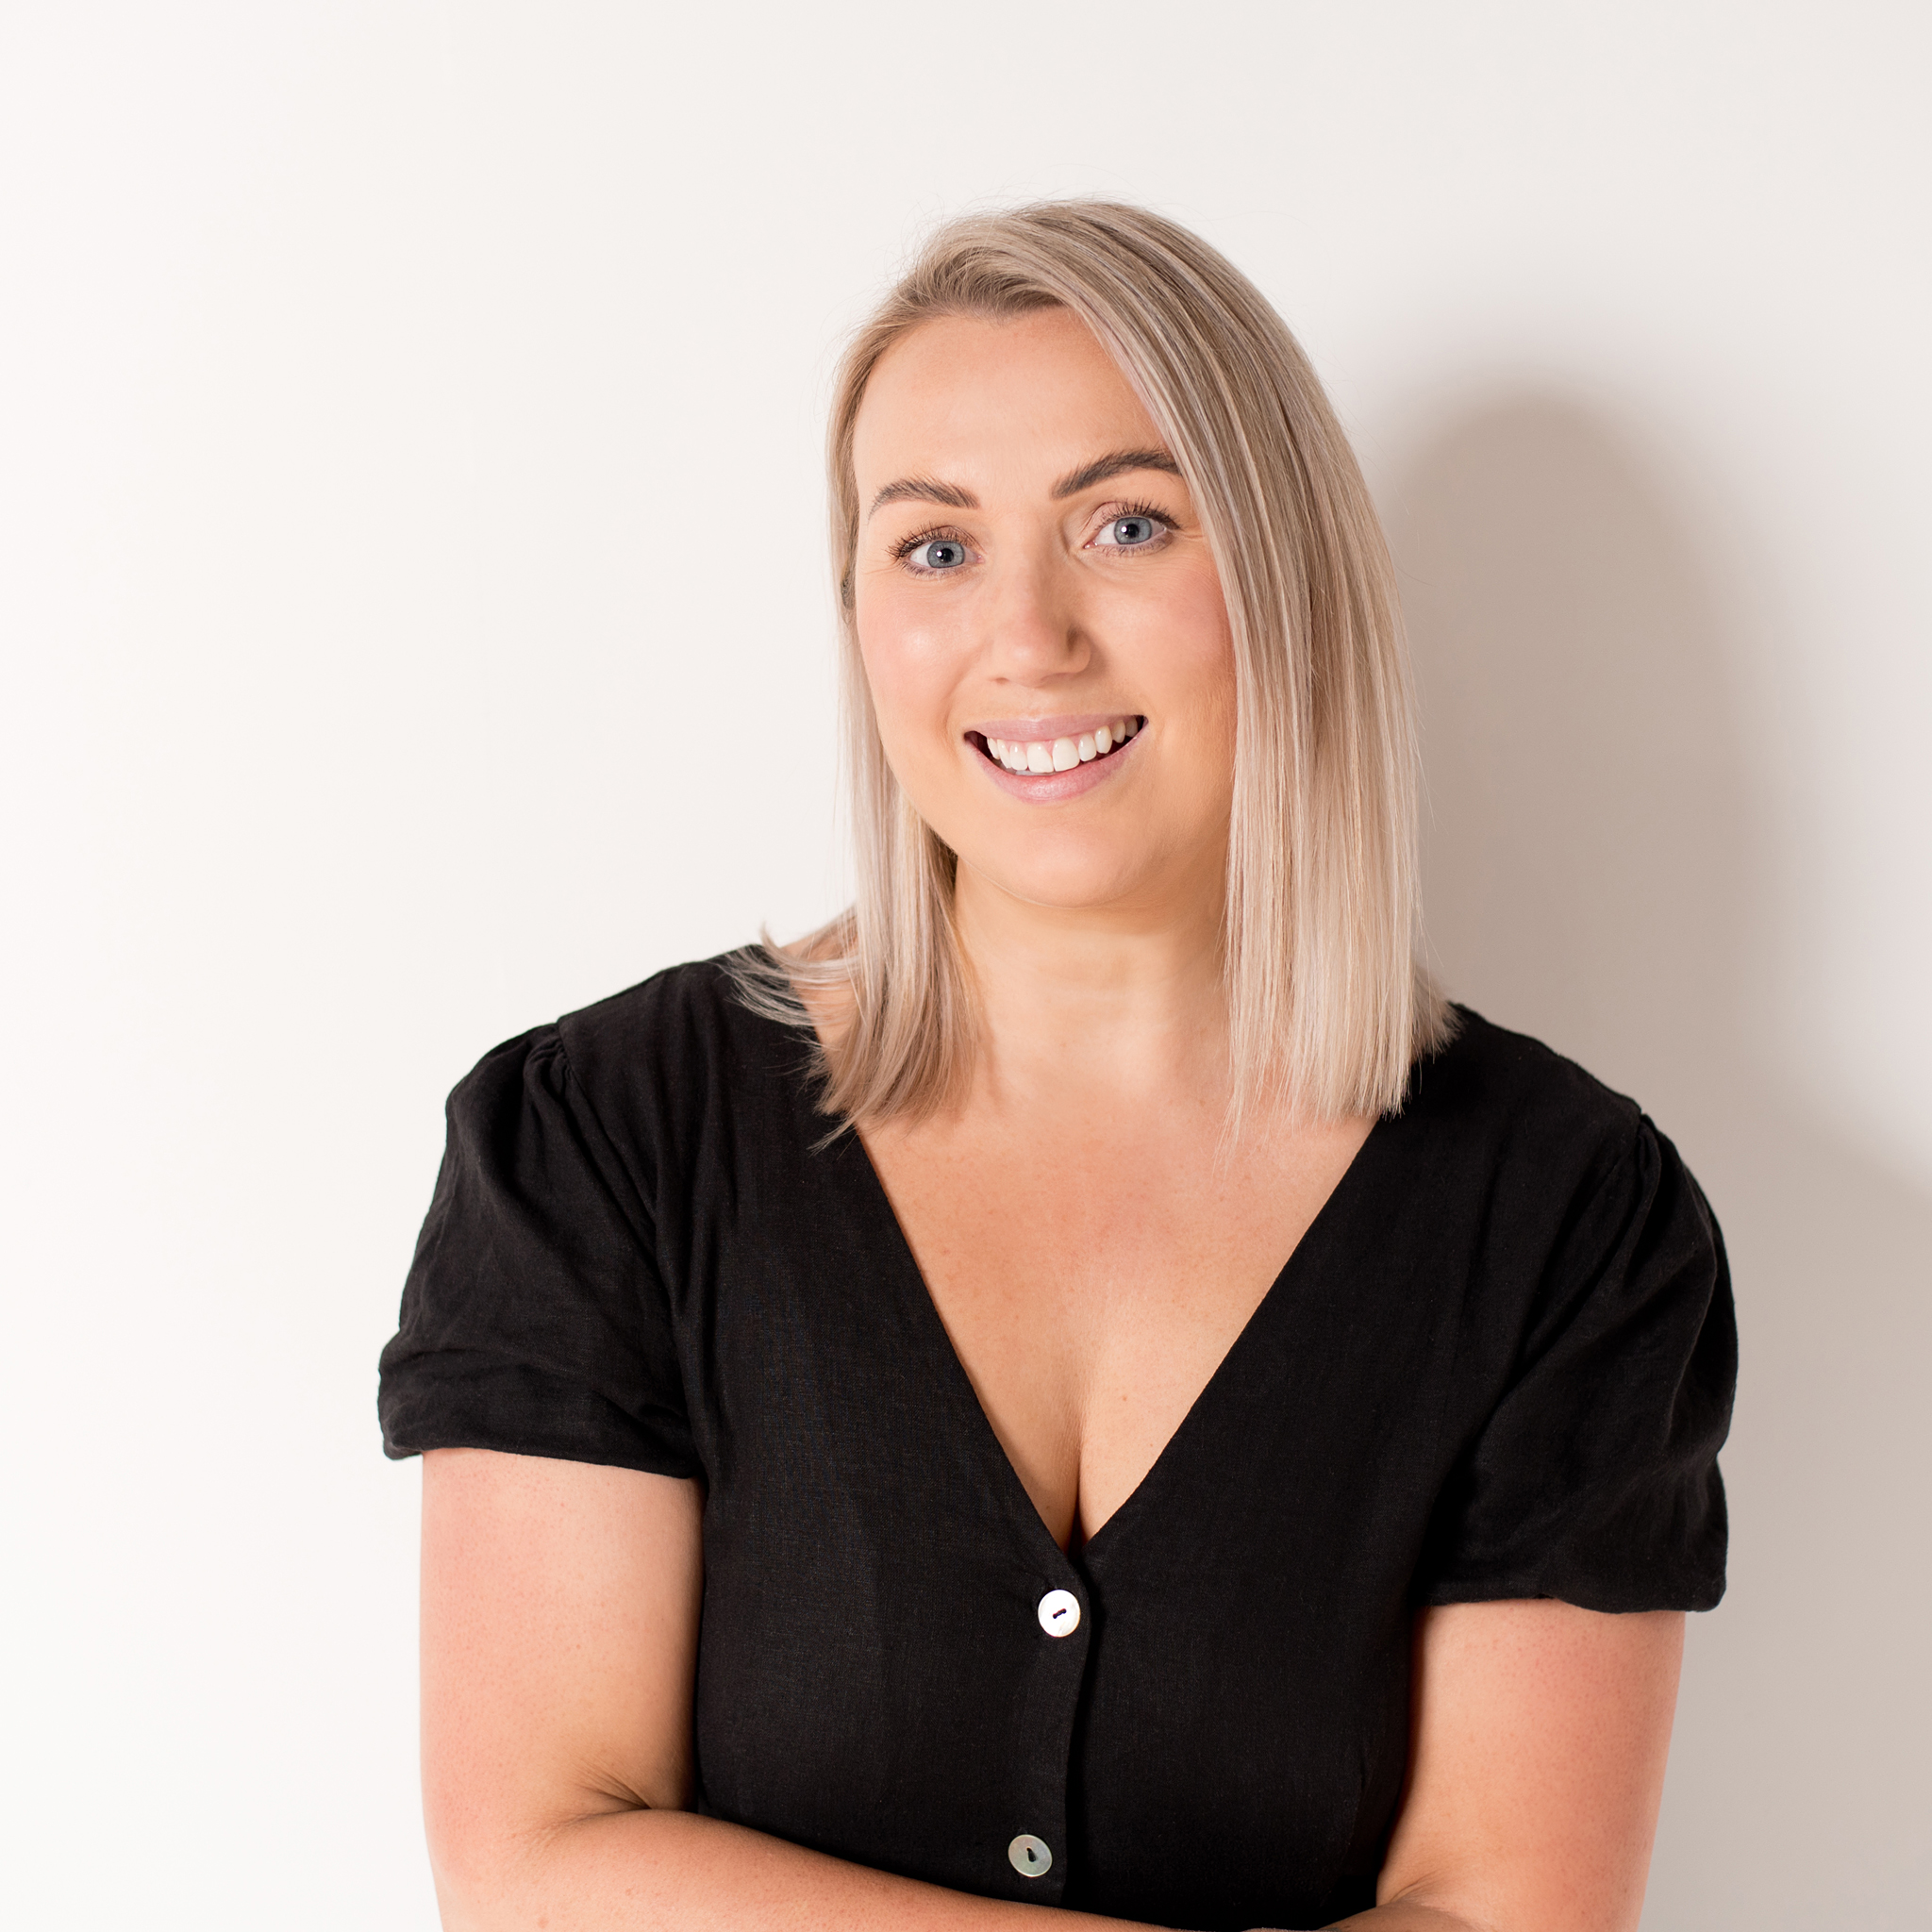 Kirsty O'Keeffe - Operations Manager